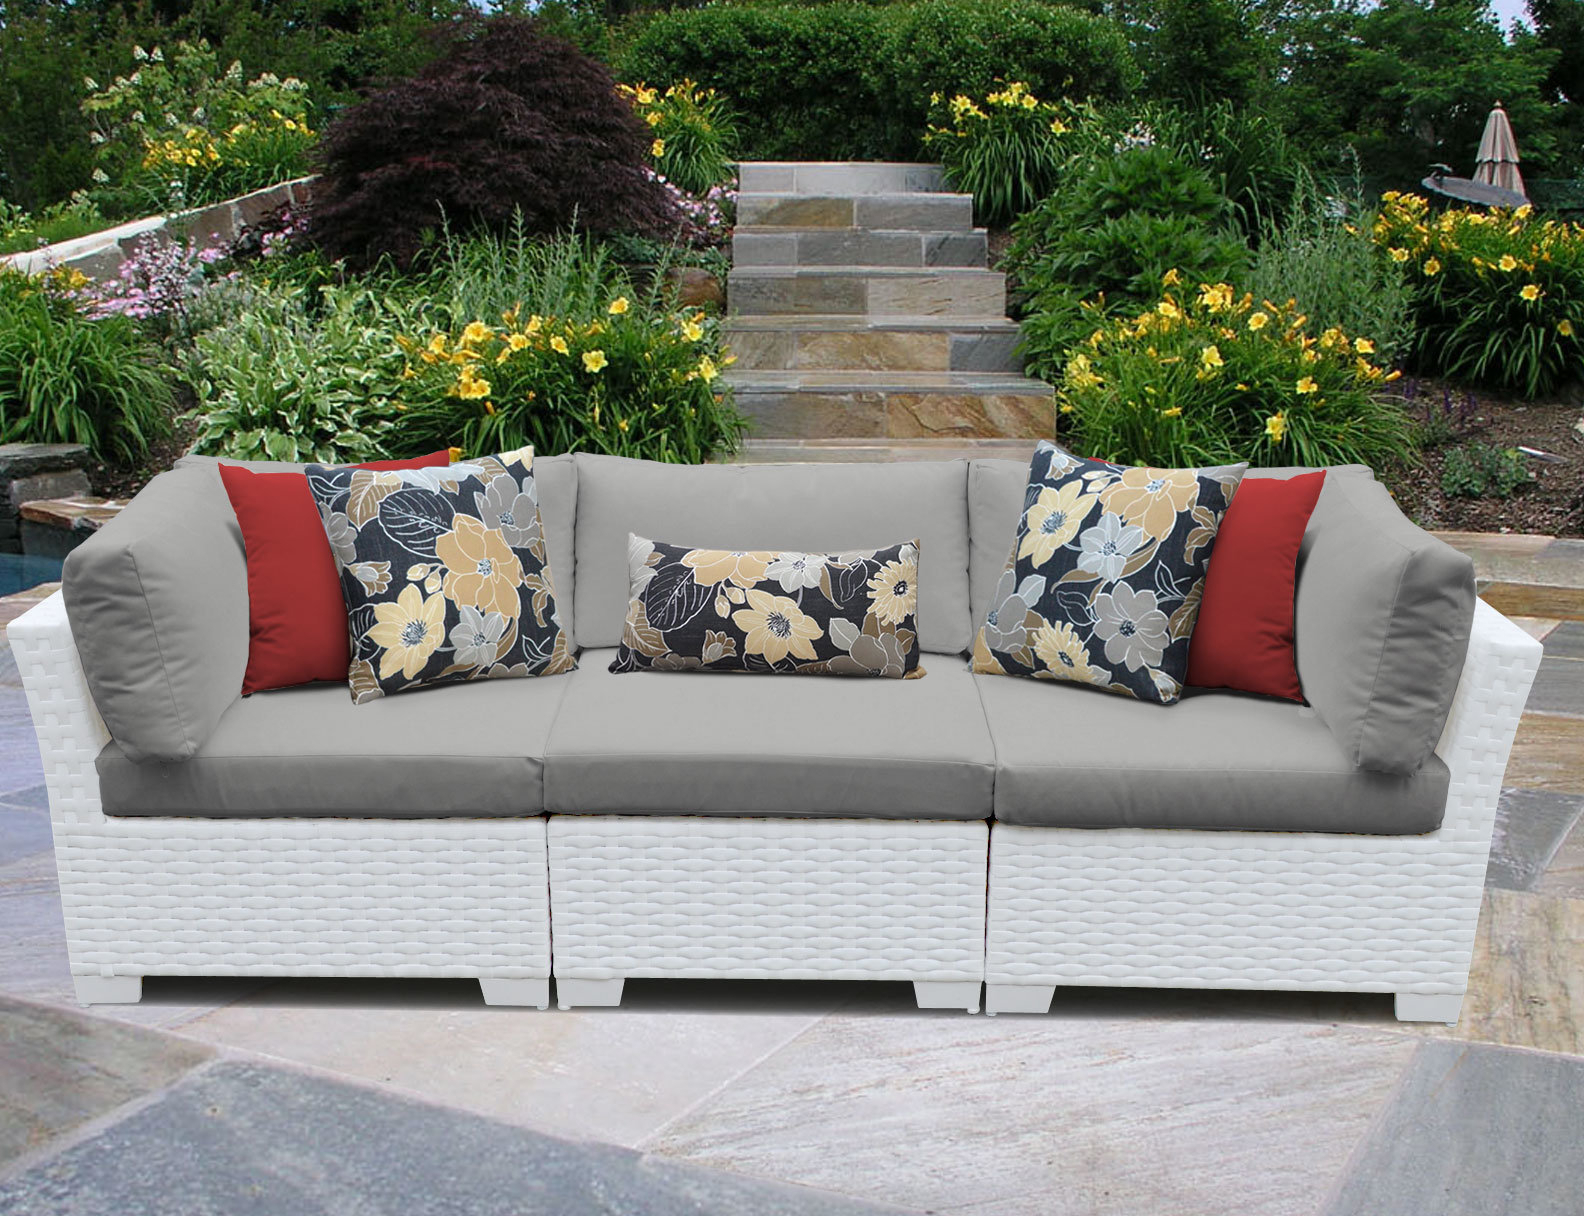 Trendy Loggins Patio Sofas With Cushions Pertaining To Monaco Patio Sofa With Cushions (View 18 of 20)